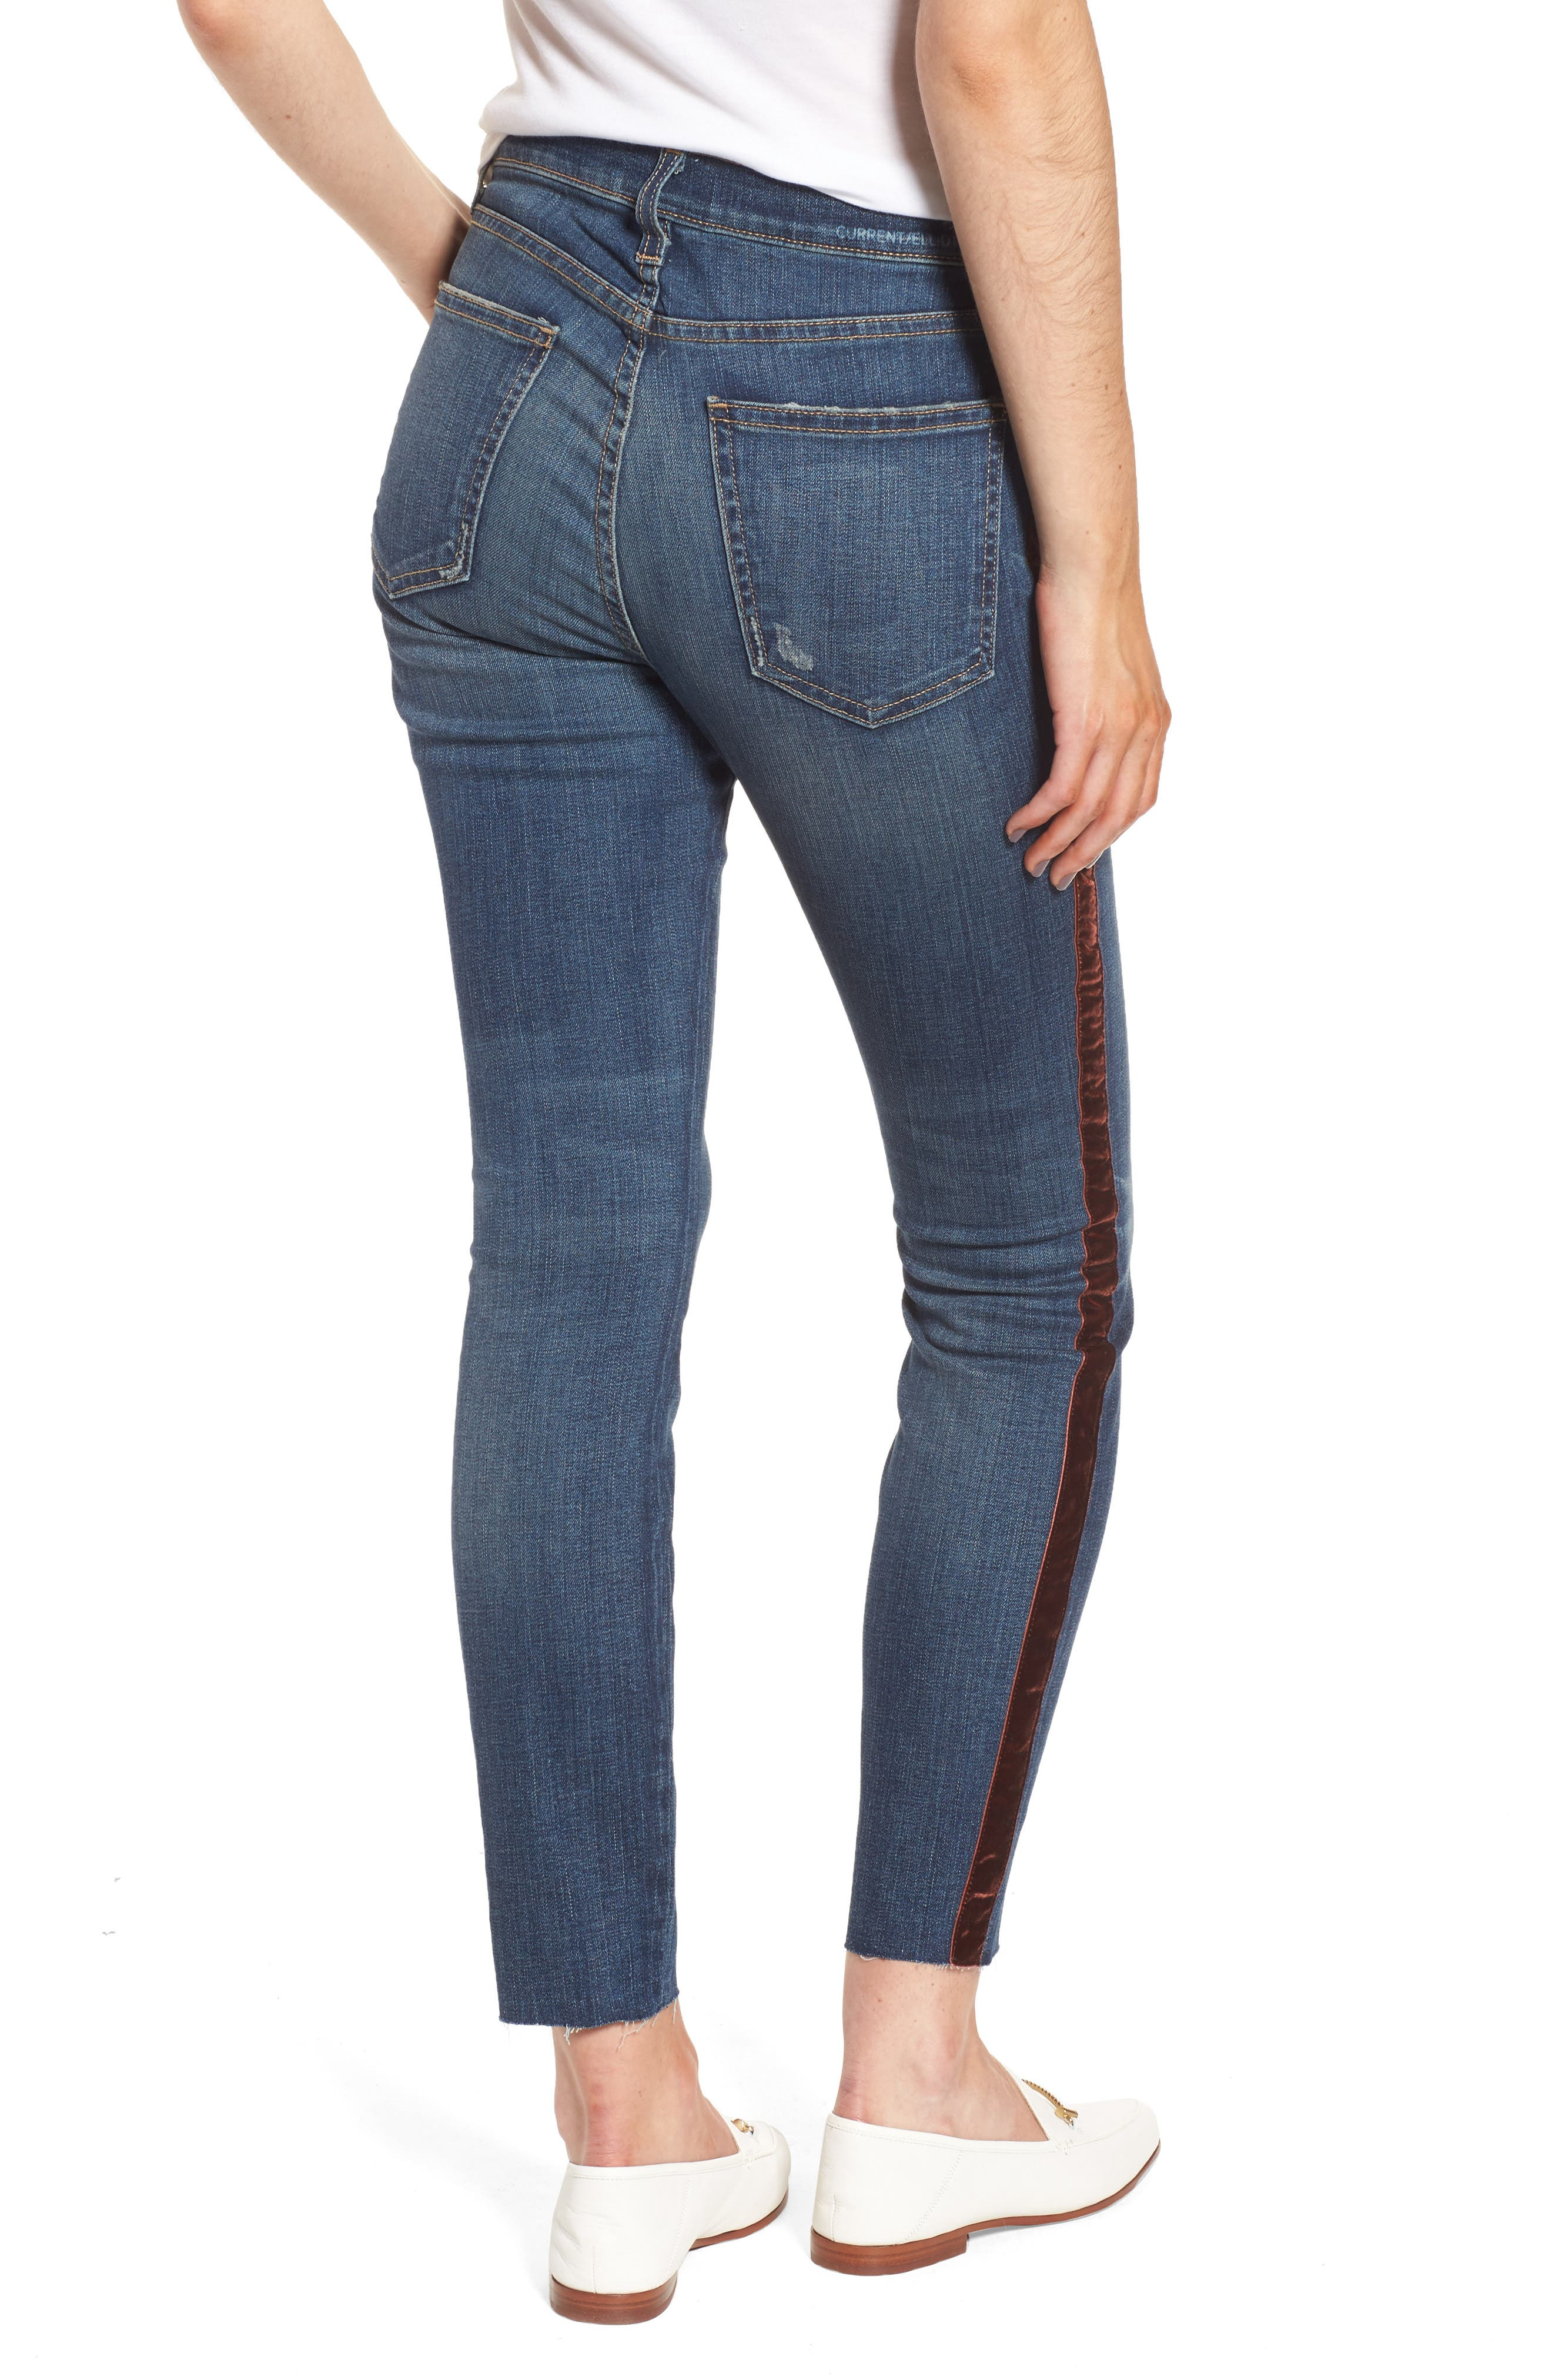 Alternate Image 2  - Current/Elliott The High Waist Stiletto Ankle Skinny Jeans (Townie)